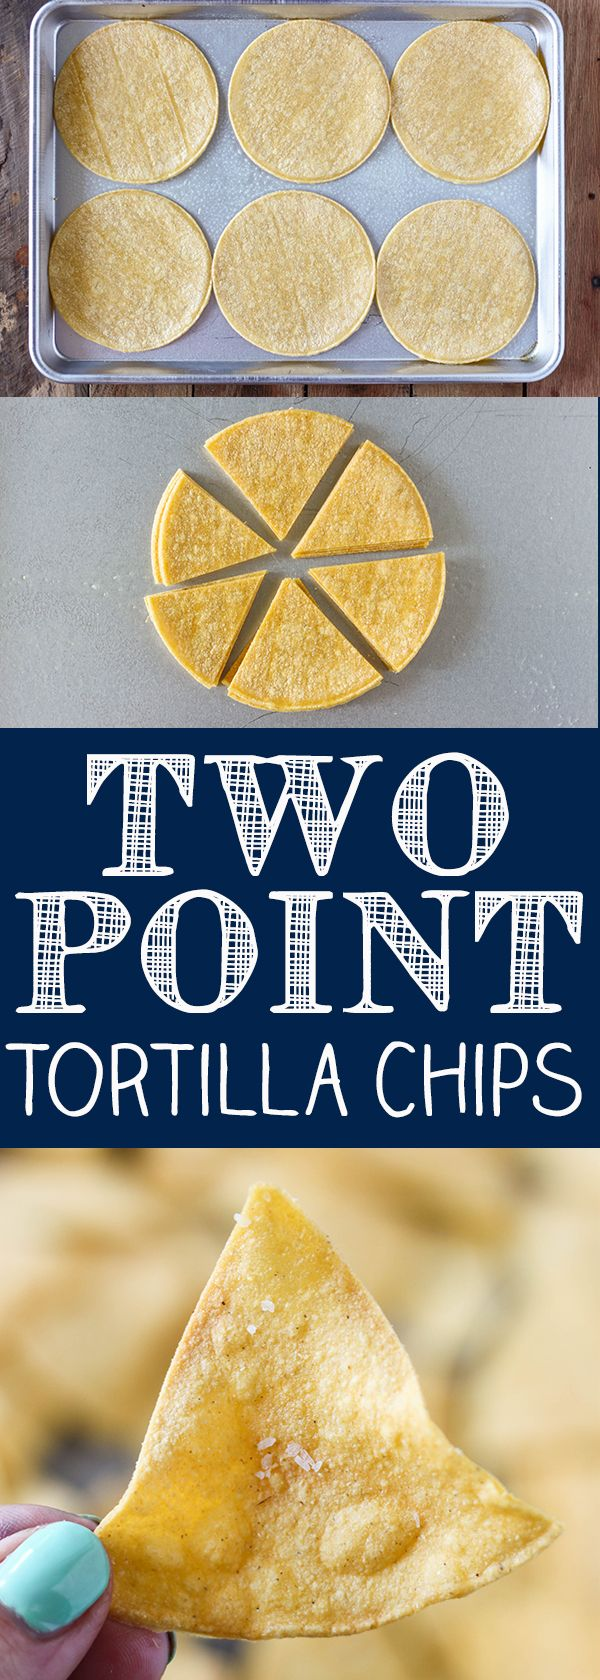 Two Point Weight Watcher Tortilla Chips - Easy Baked Tortillas Chips